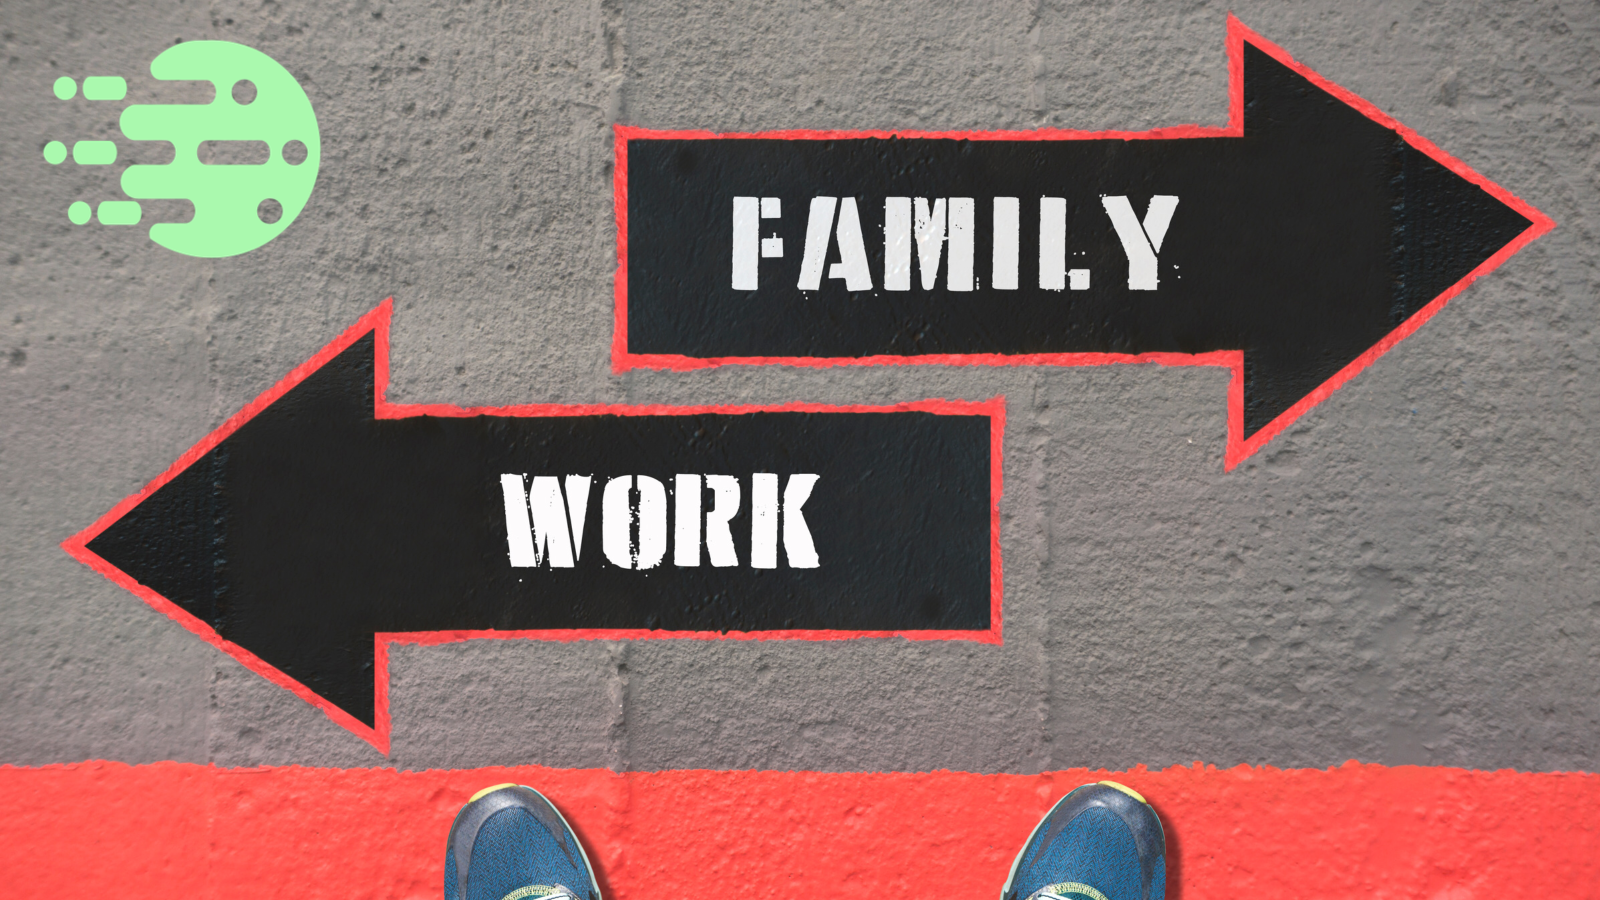 Workforce-Family Interface: Conflict and Enrichment